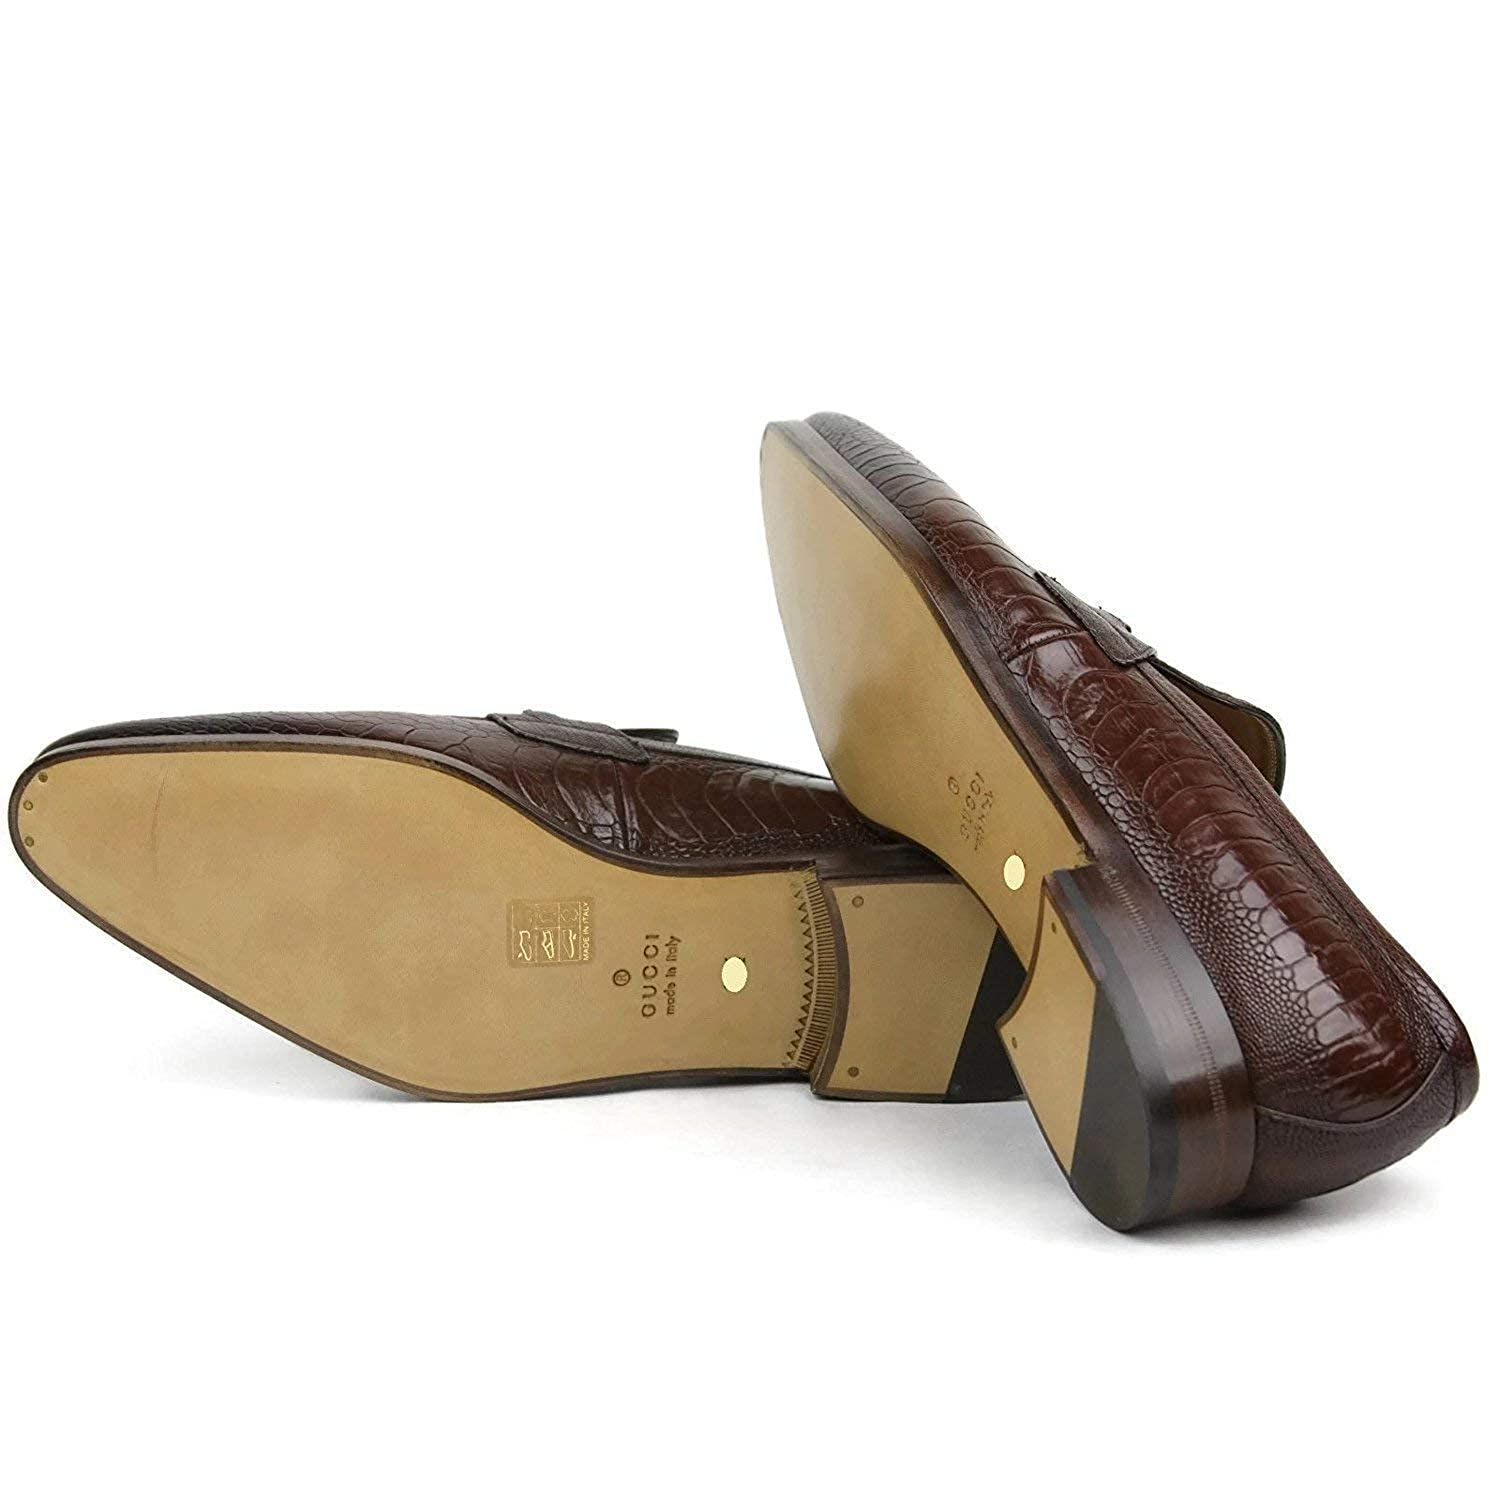 Gucci Brown bocado uña Avestruz Mocasines 353016 ED300 2218 U.S. 10.5: Amazon.es: Zapatos y complementos